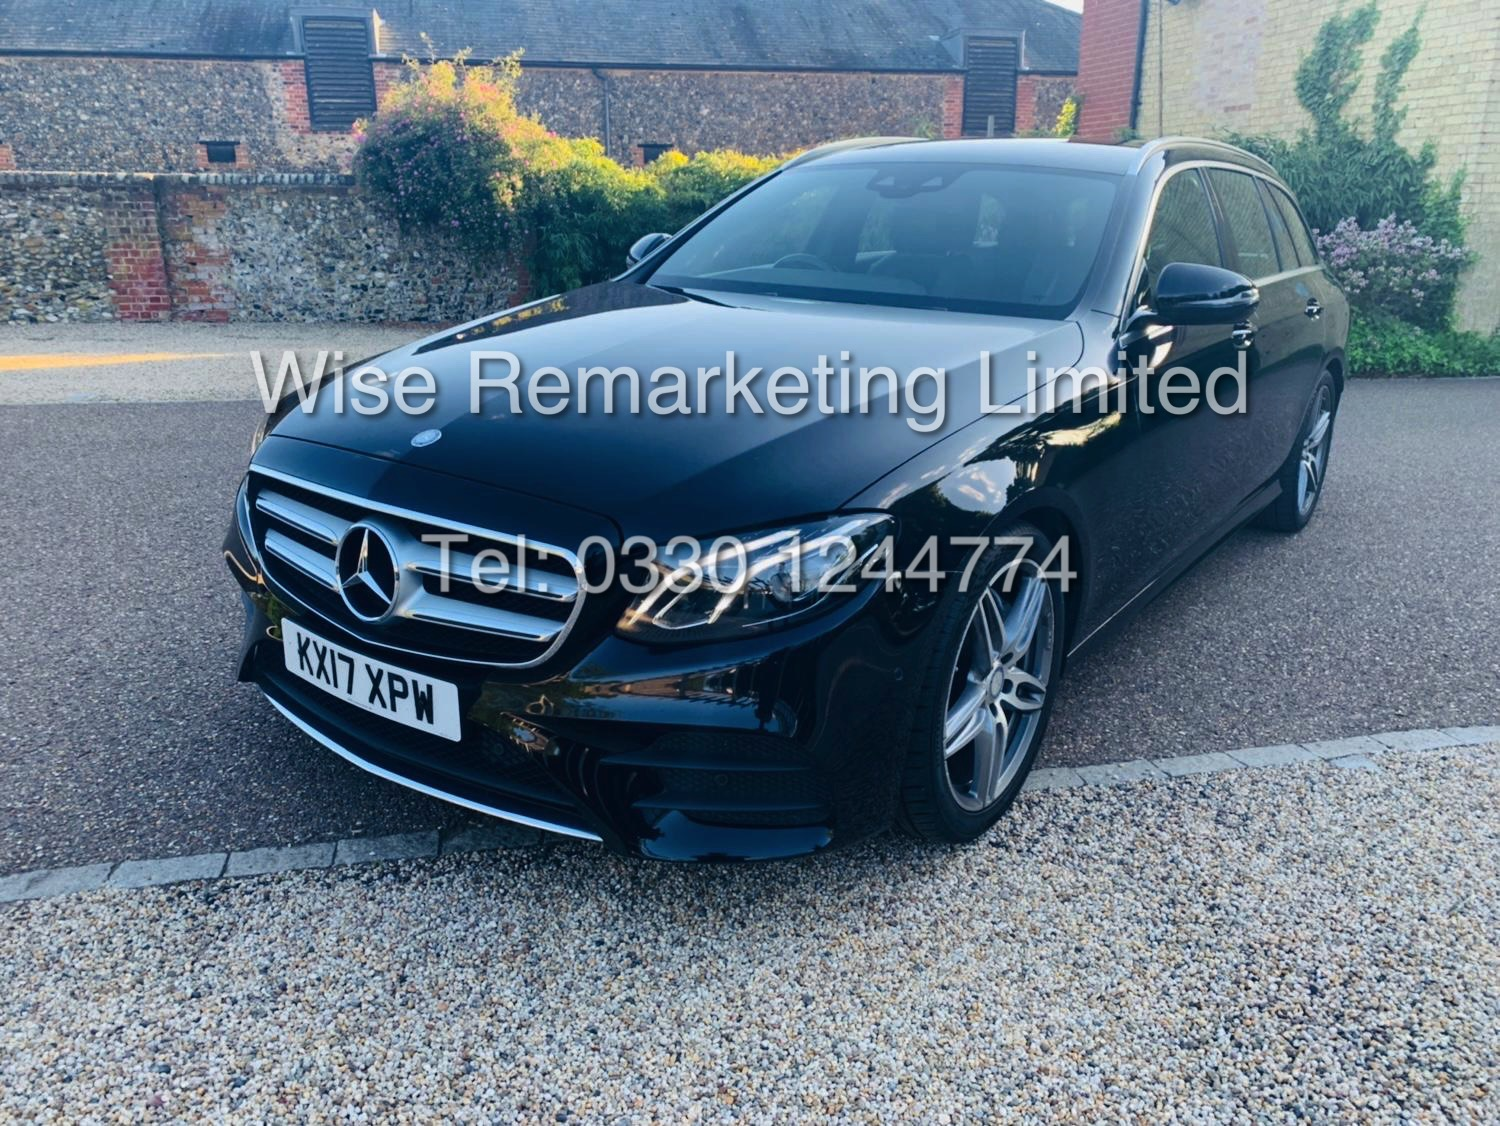 MERCEDES E CLASS ESTATE E220D AMG LINE 2017 / 9G -TRONIC / *LOW MILES* / 1 OWNER - Image 2 of 42